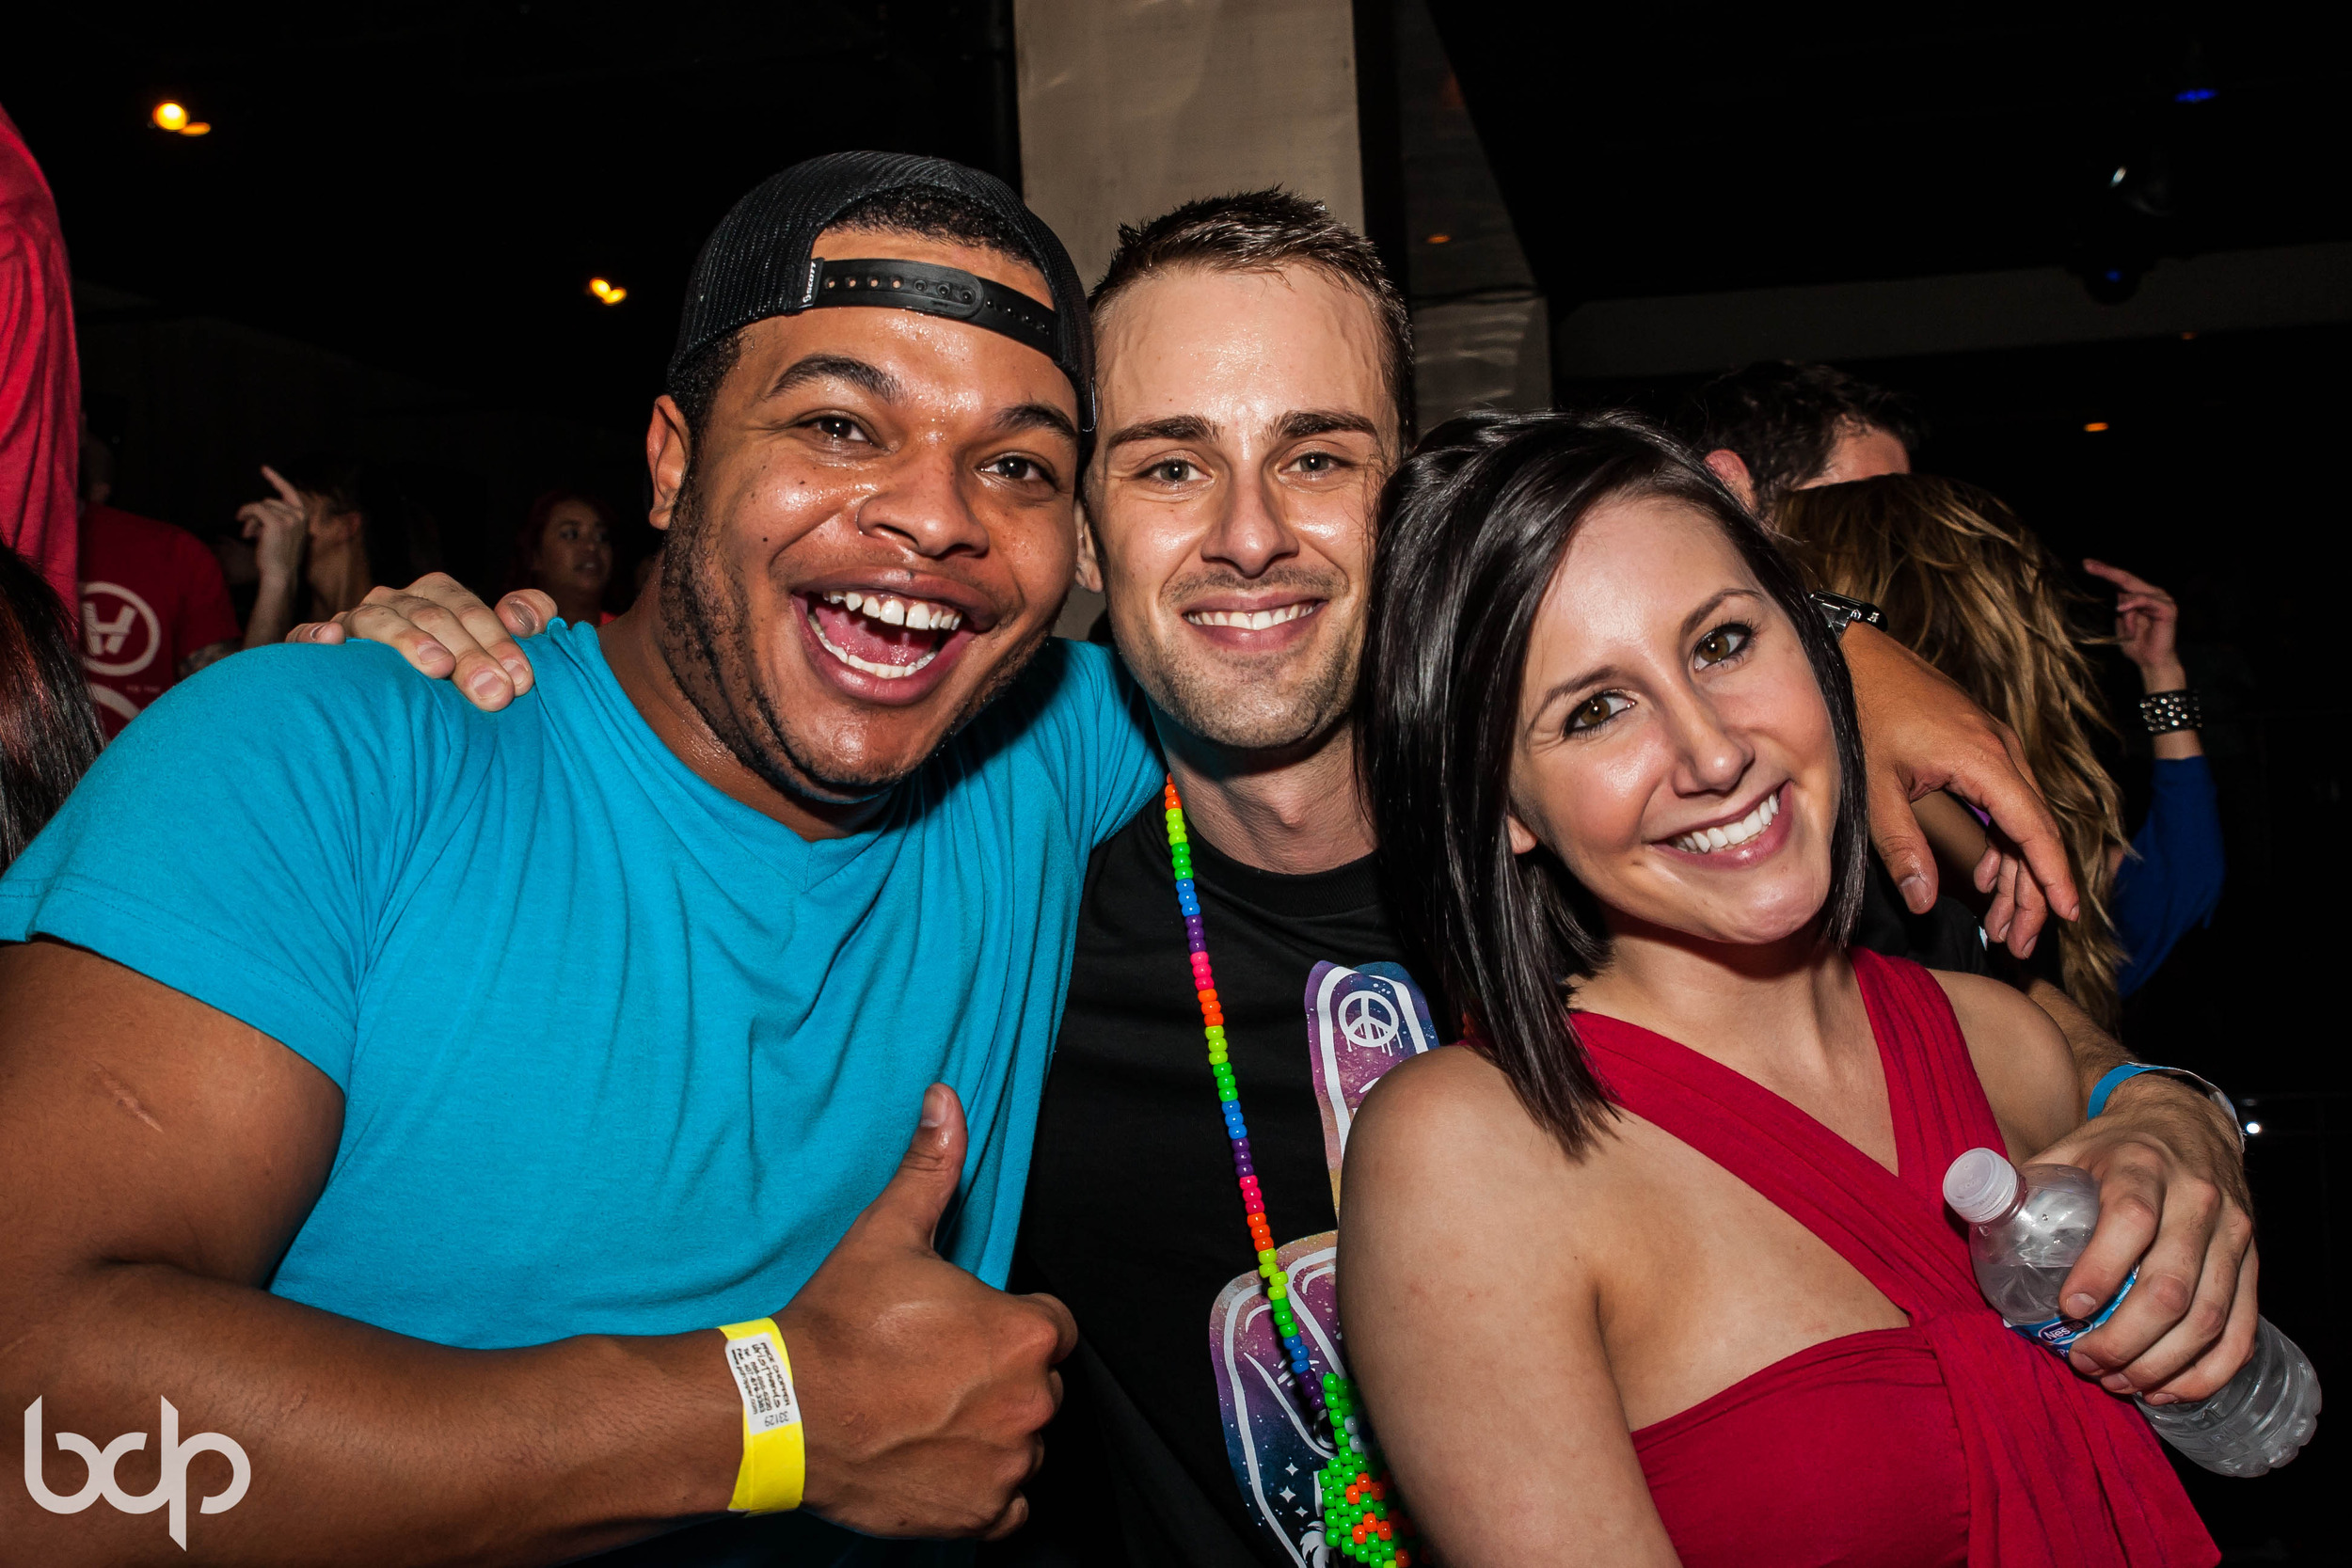 Aokify America Tour at Epic at Epic 110913 BDP-17.jpg